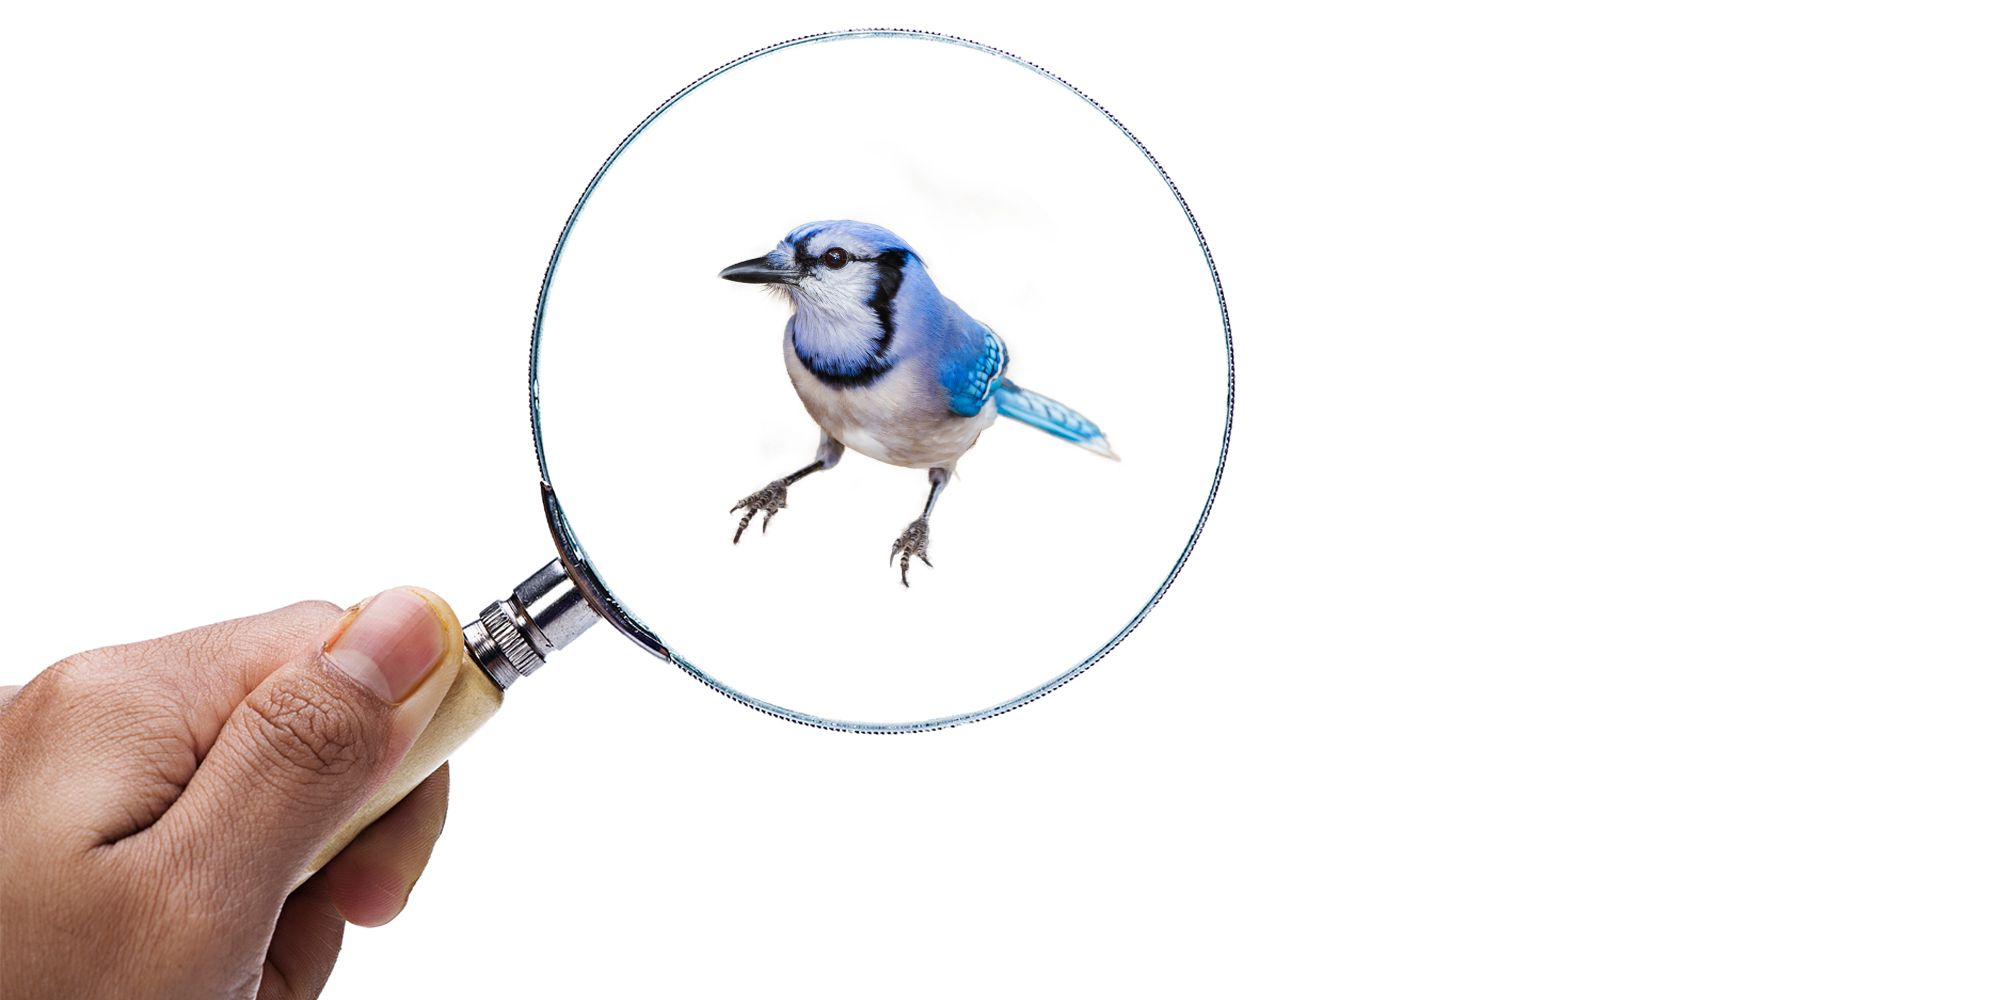 Why Birds Are Getting Smaller